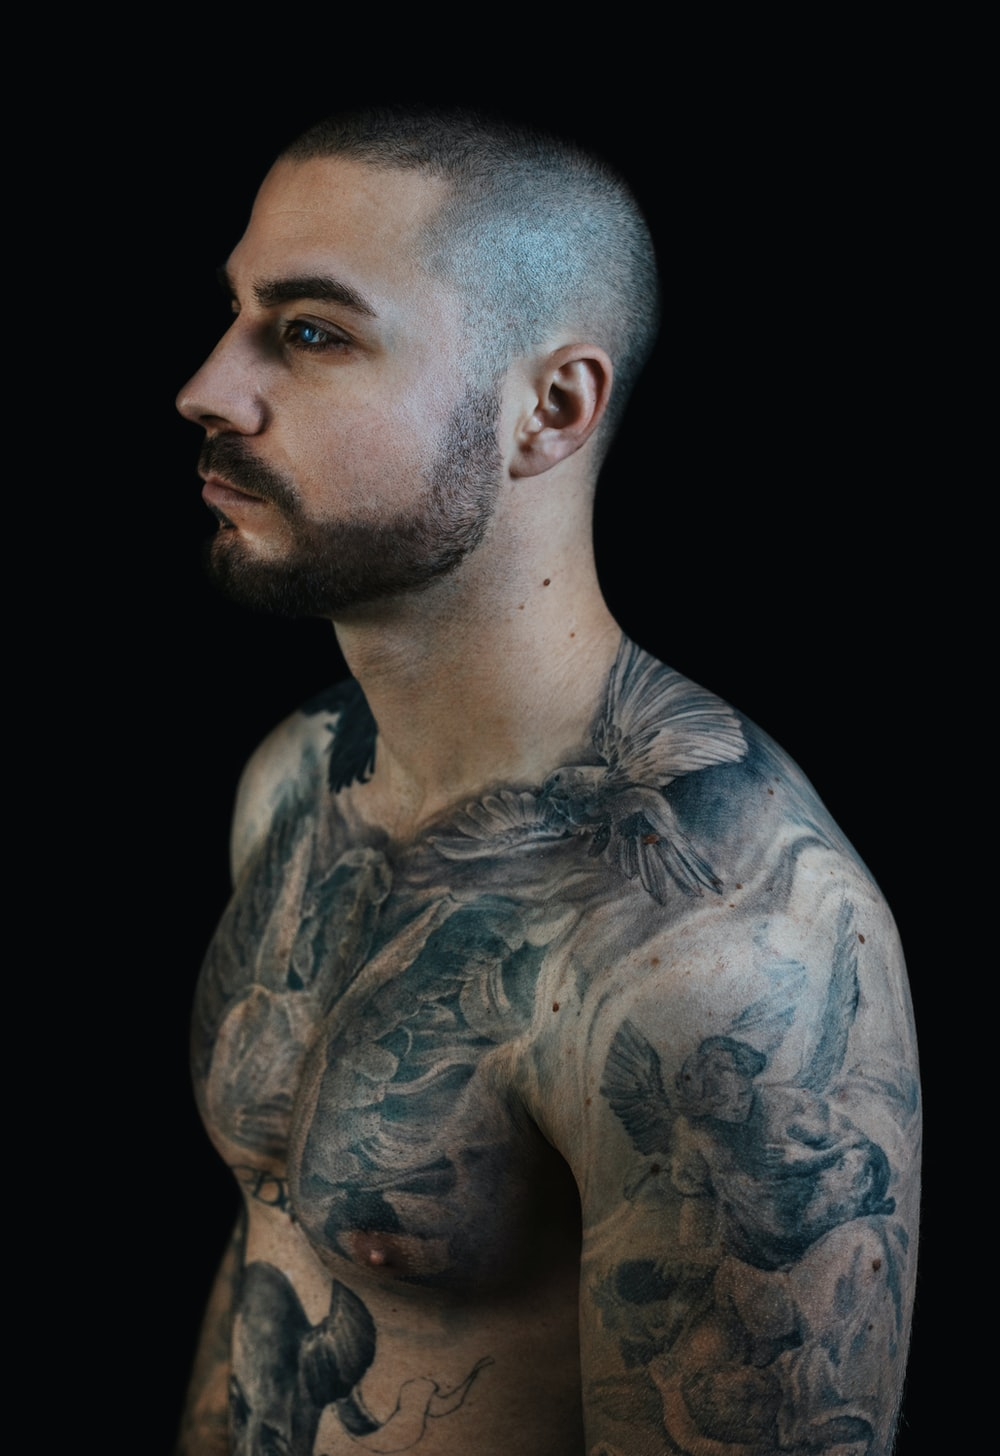 man with blue and black body tattoo